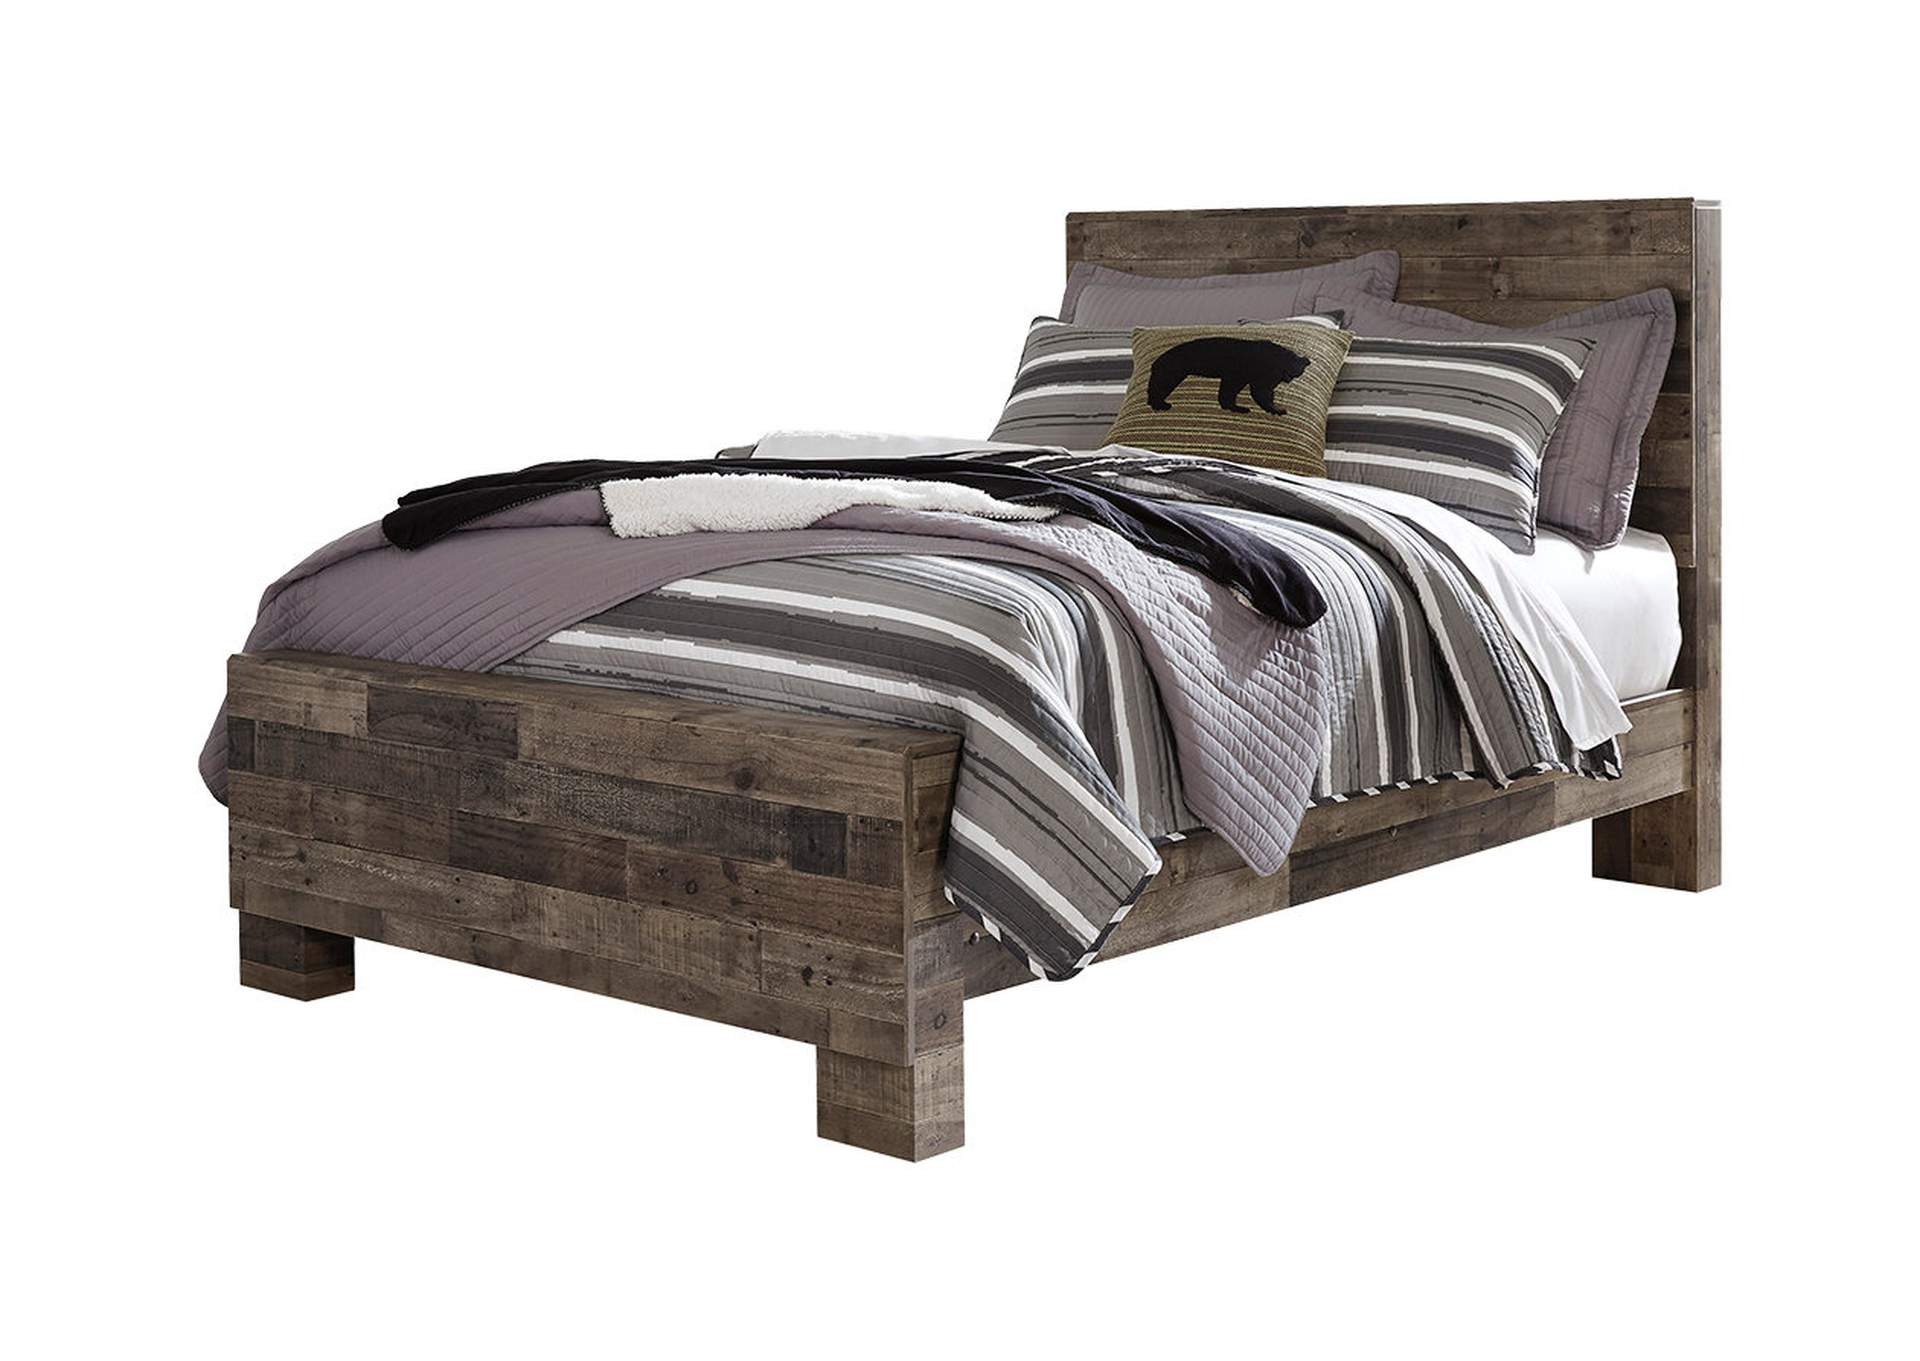 Derekson Full Panel Bed,Benchcraft